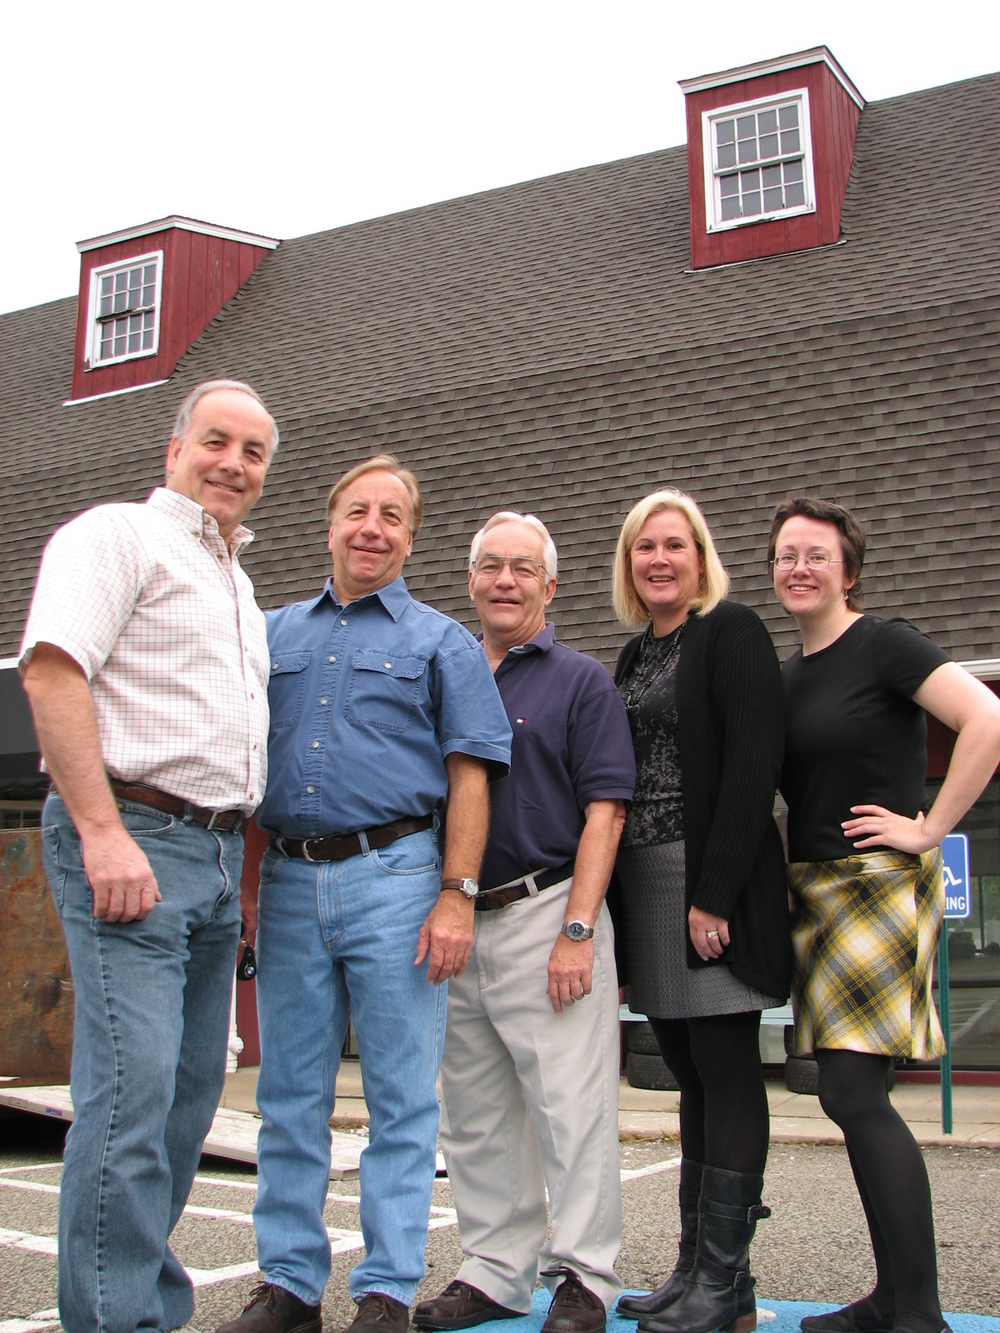 From left to right:  Doug, Chuck and Bob Satterfield, Kate McGrady, and Kate Wagle Hitmar in front of the barn at the start of construction in October 2014.